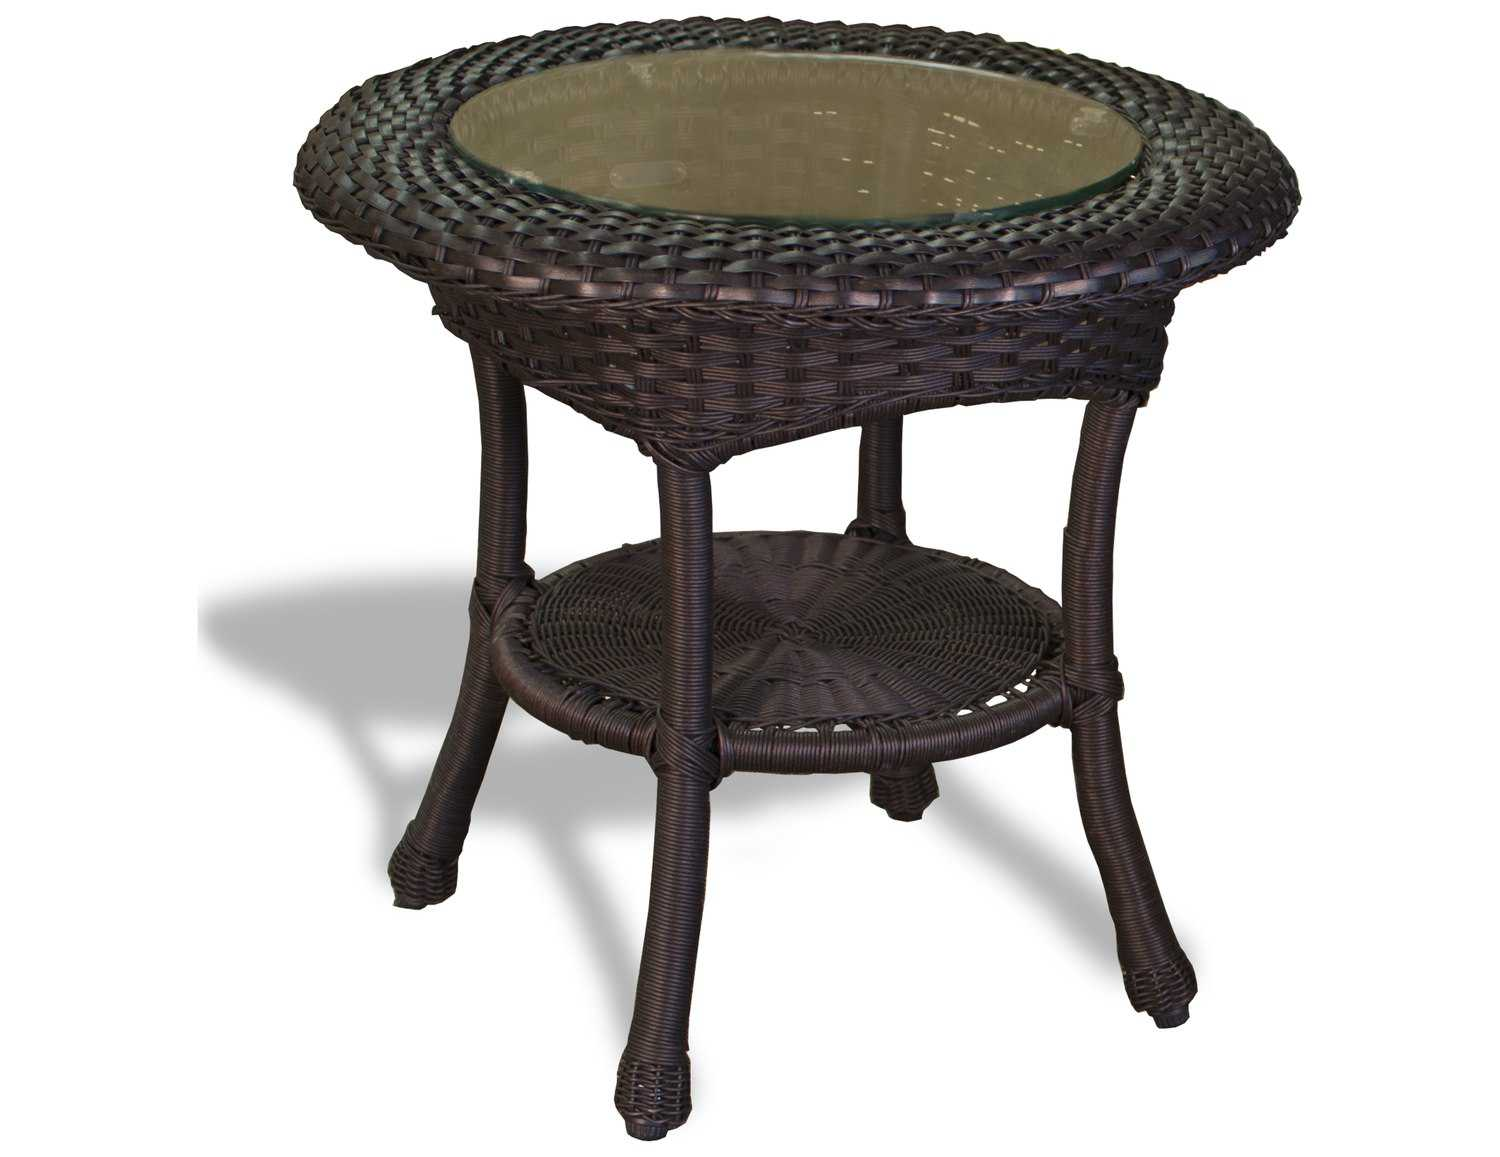 tortuga outdoor lexington wicker 22 round side table. Black Bedroom Furniture Sets. Home Design Ideas